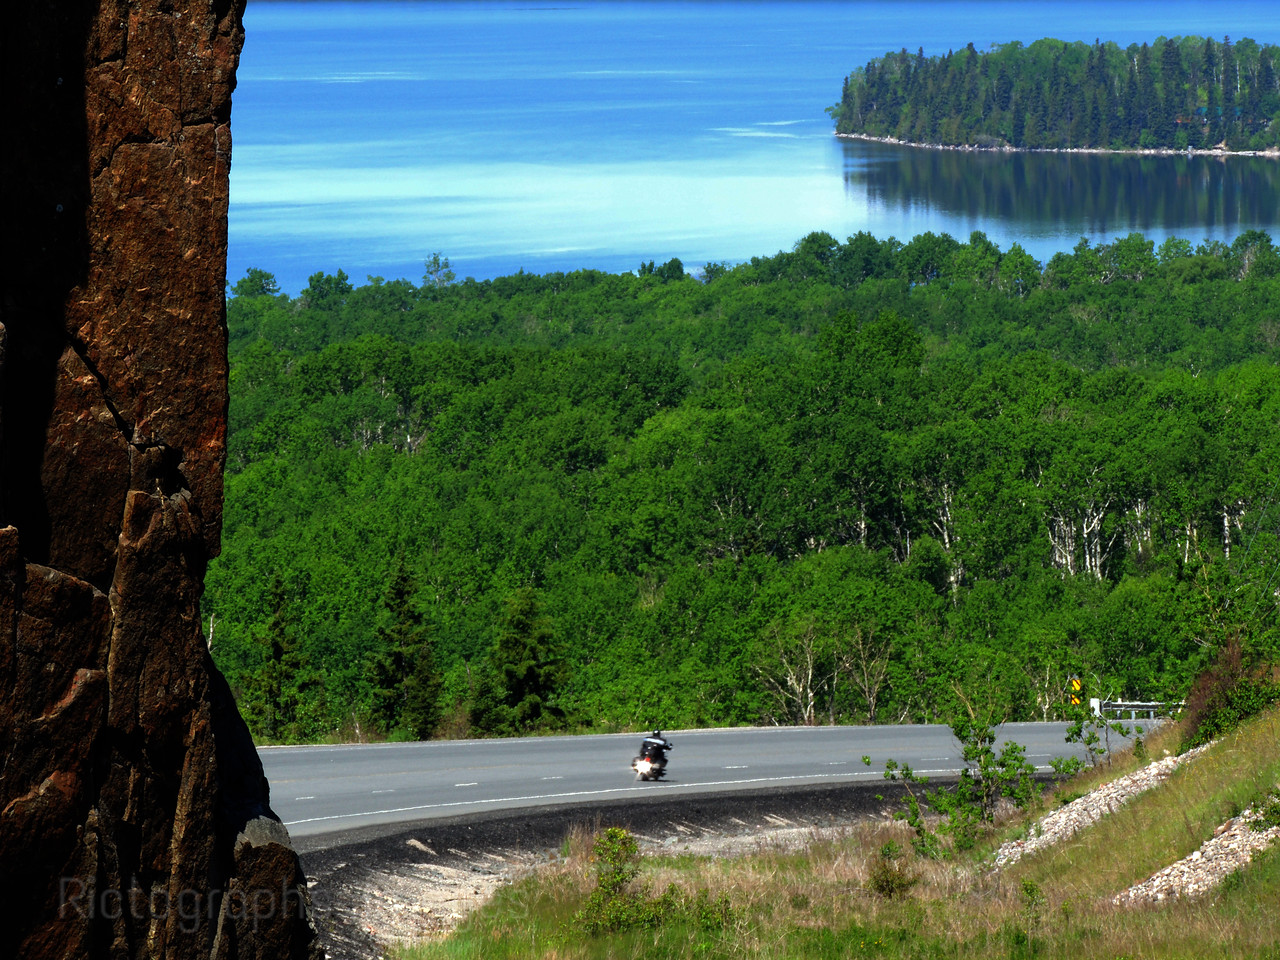 Biking The Trans Canada Highway; Road Trip Touring